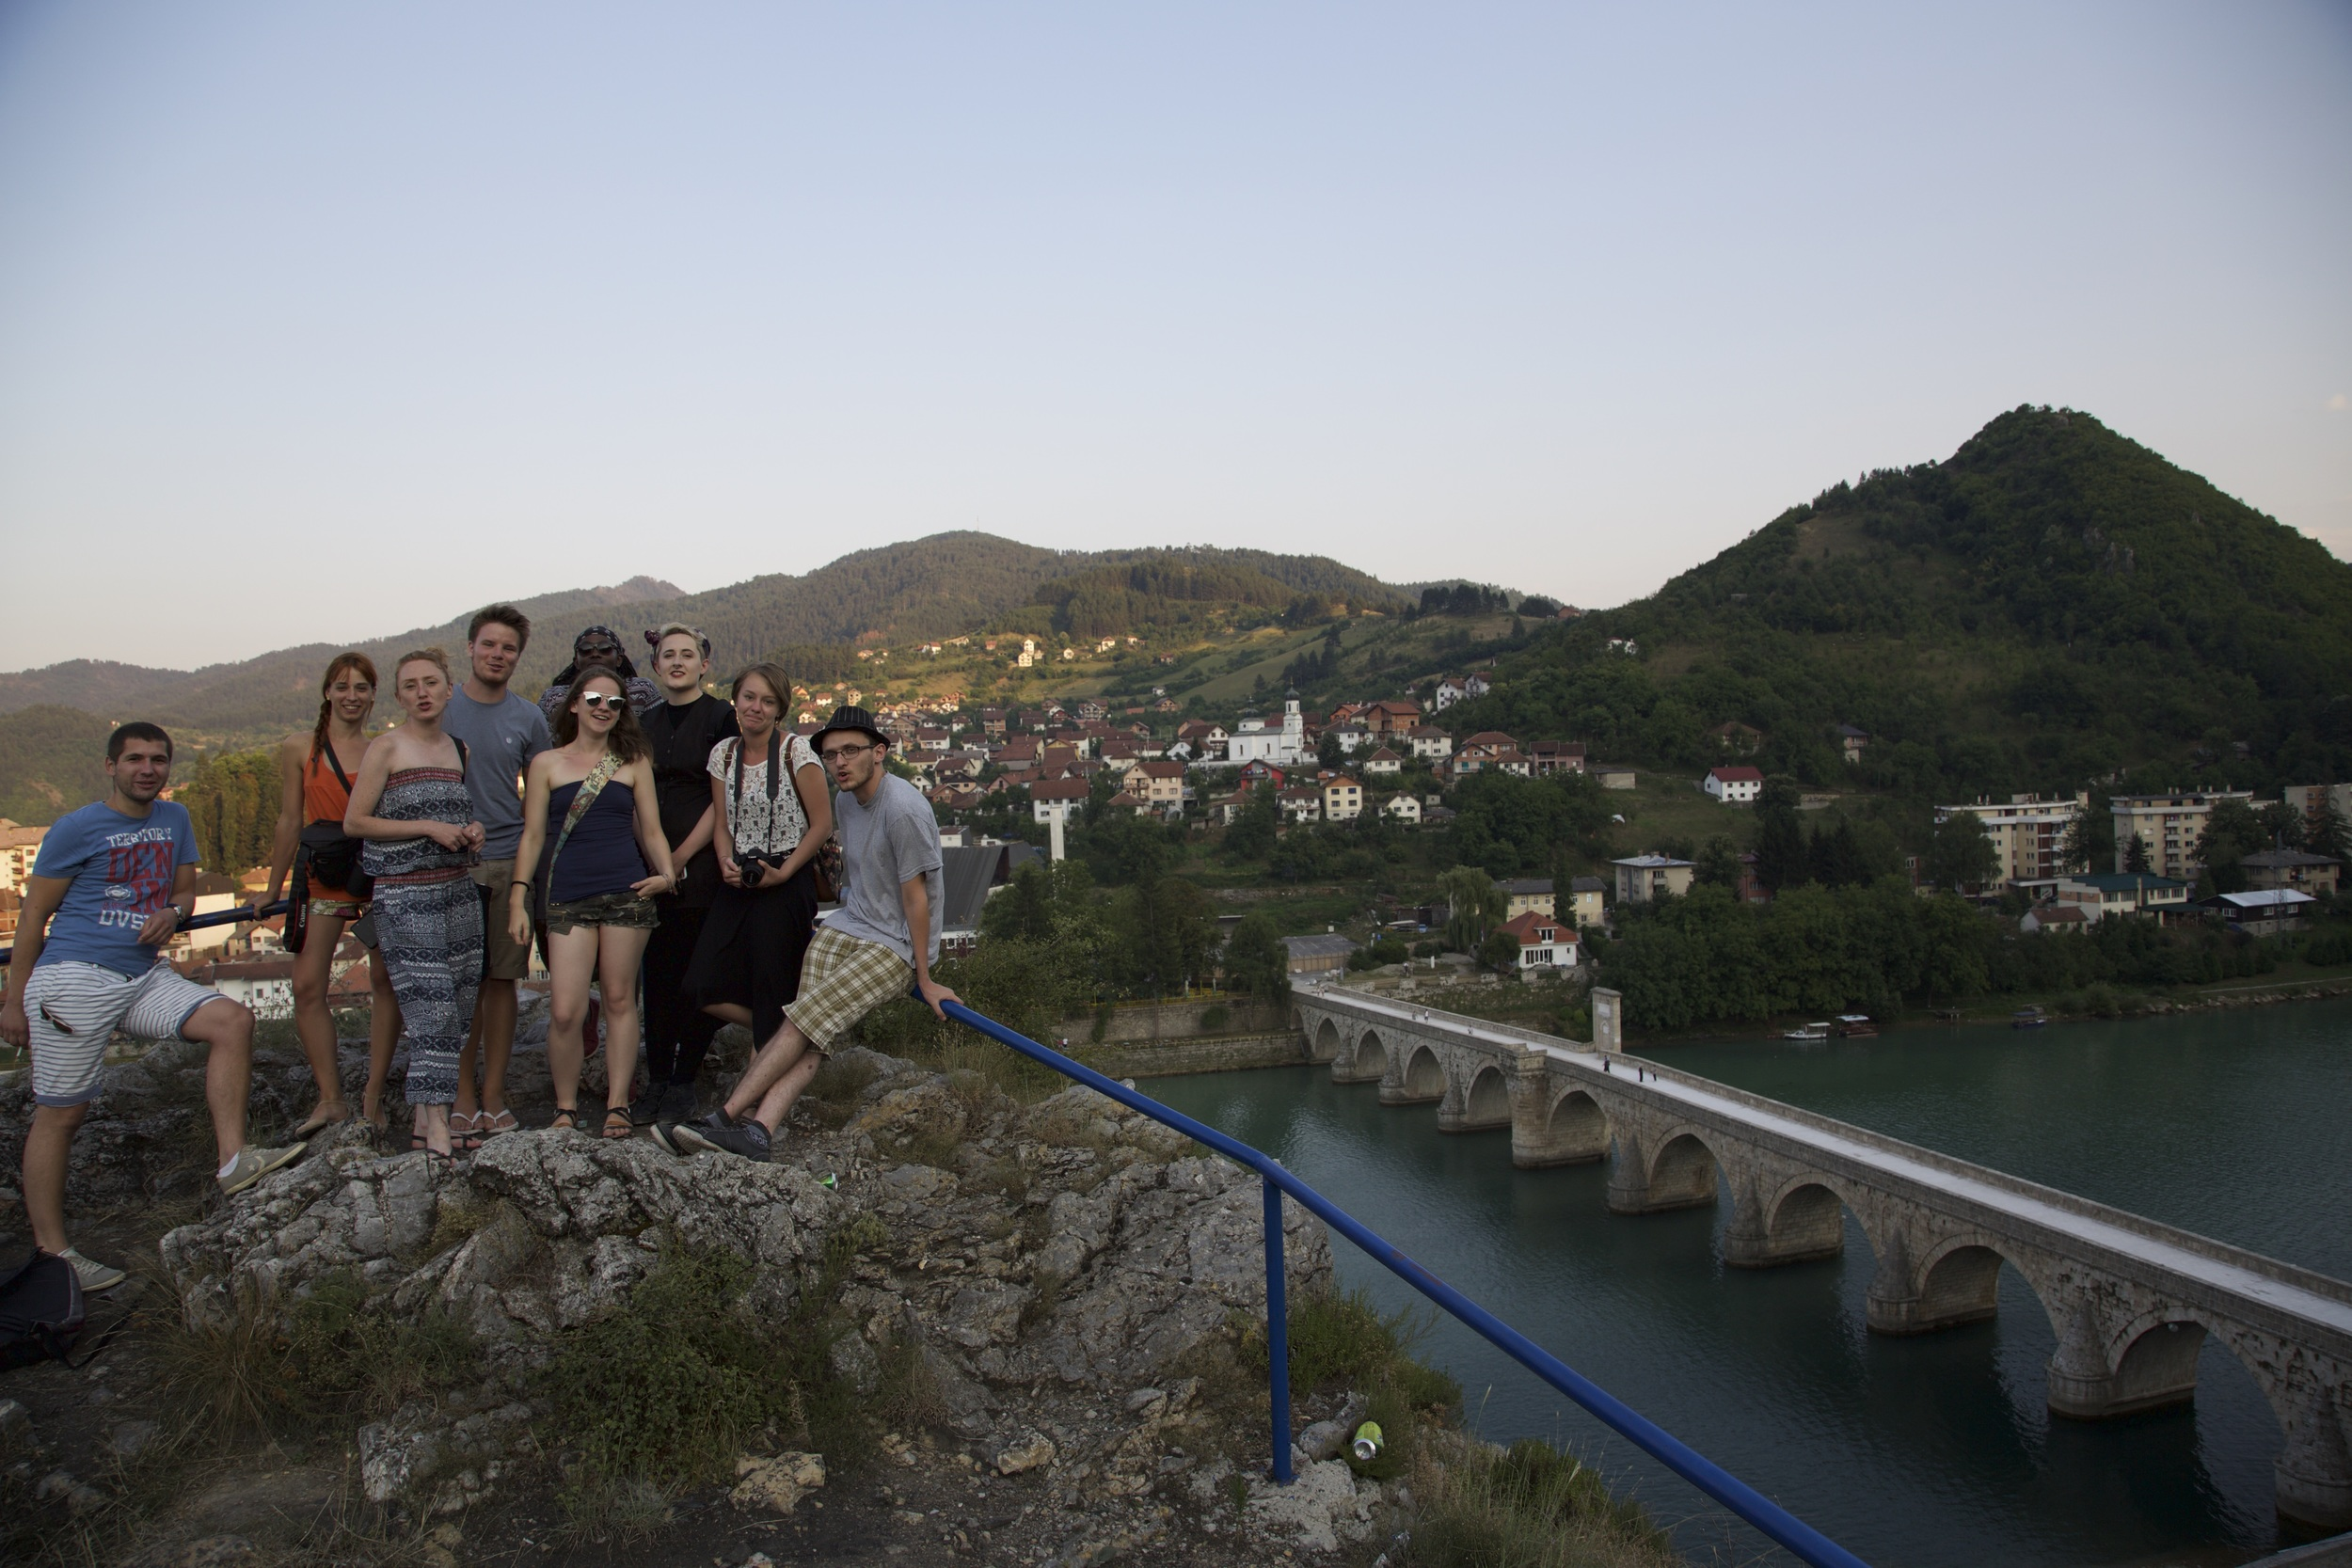 Some of the participants and organising team of TCFT's Visegrad chapter in 2015 (taken by Julia Brown, TCFT 2015 participant)